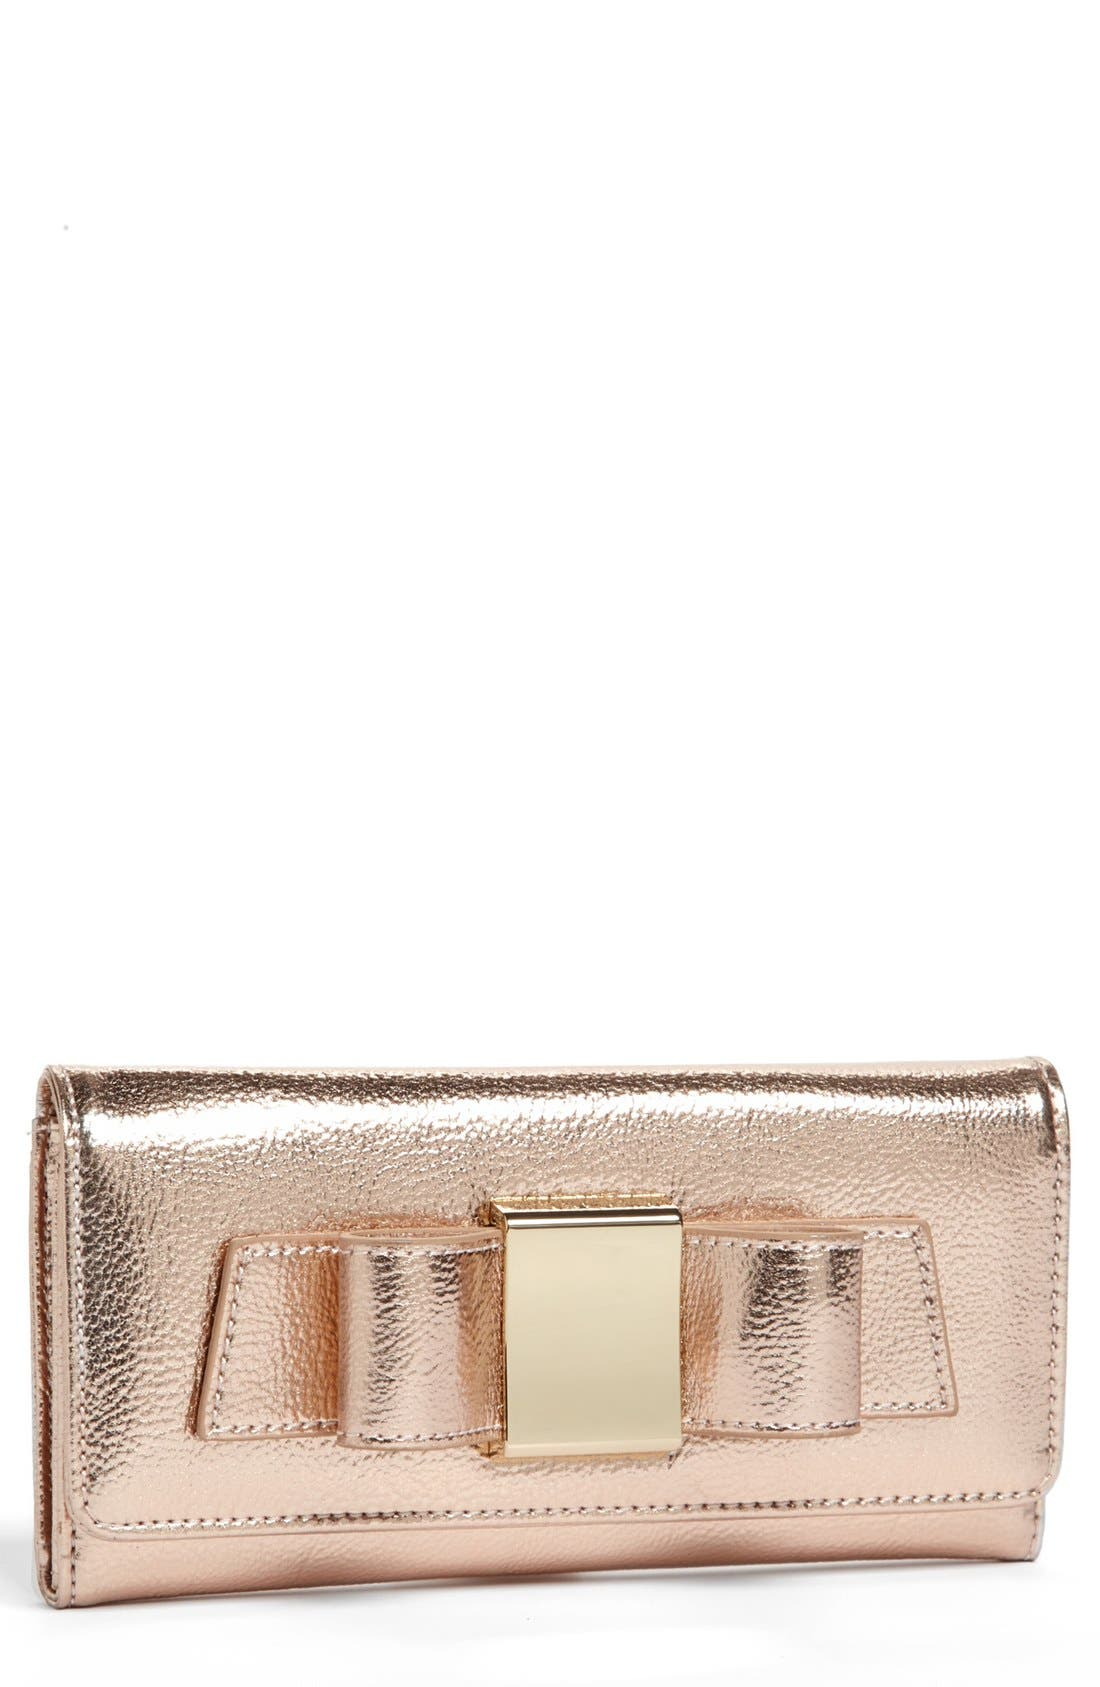 Main Image - Ivanka Trump 'Blair' Metallic Wallet